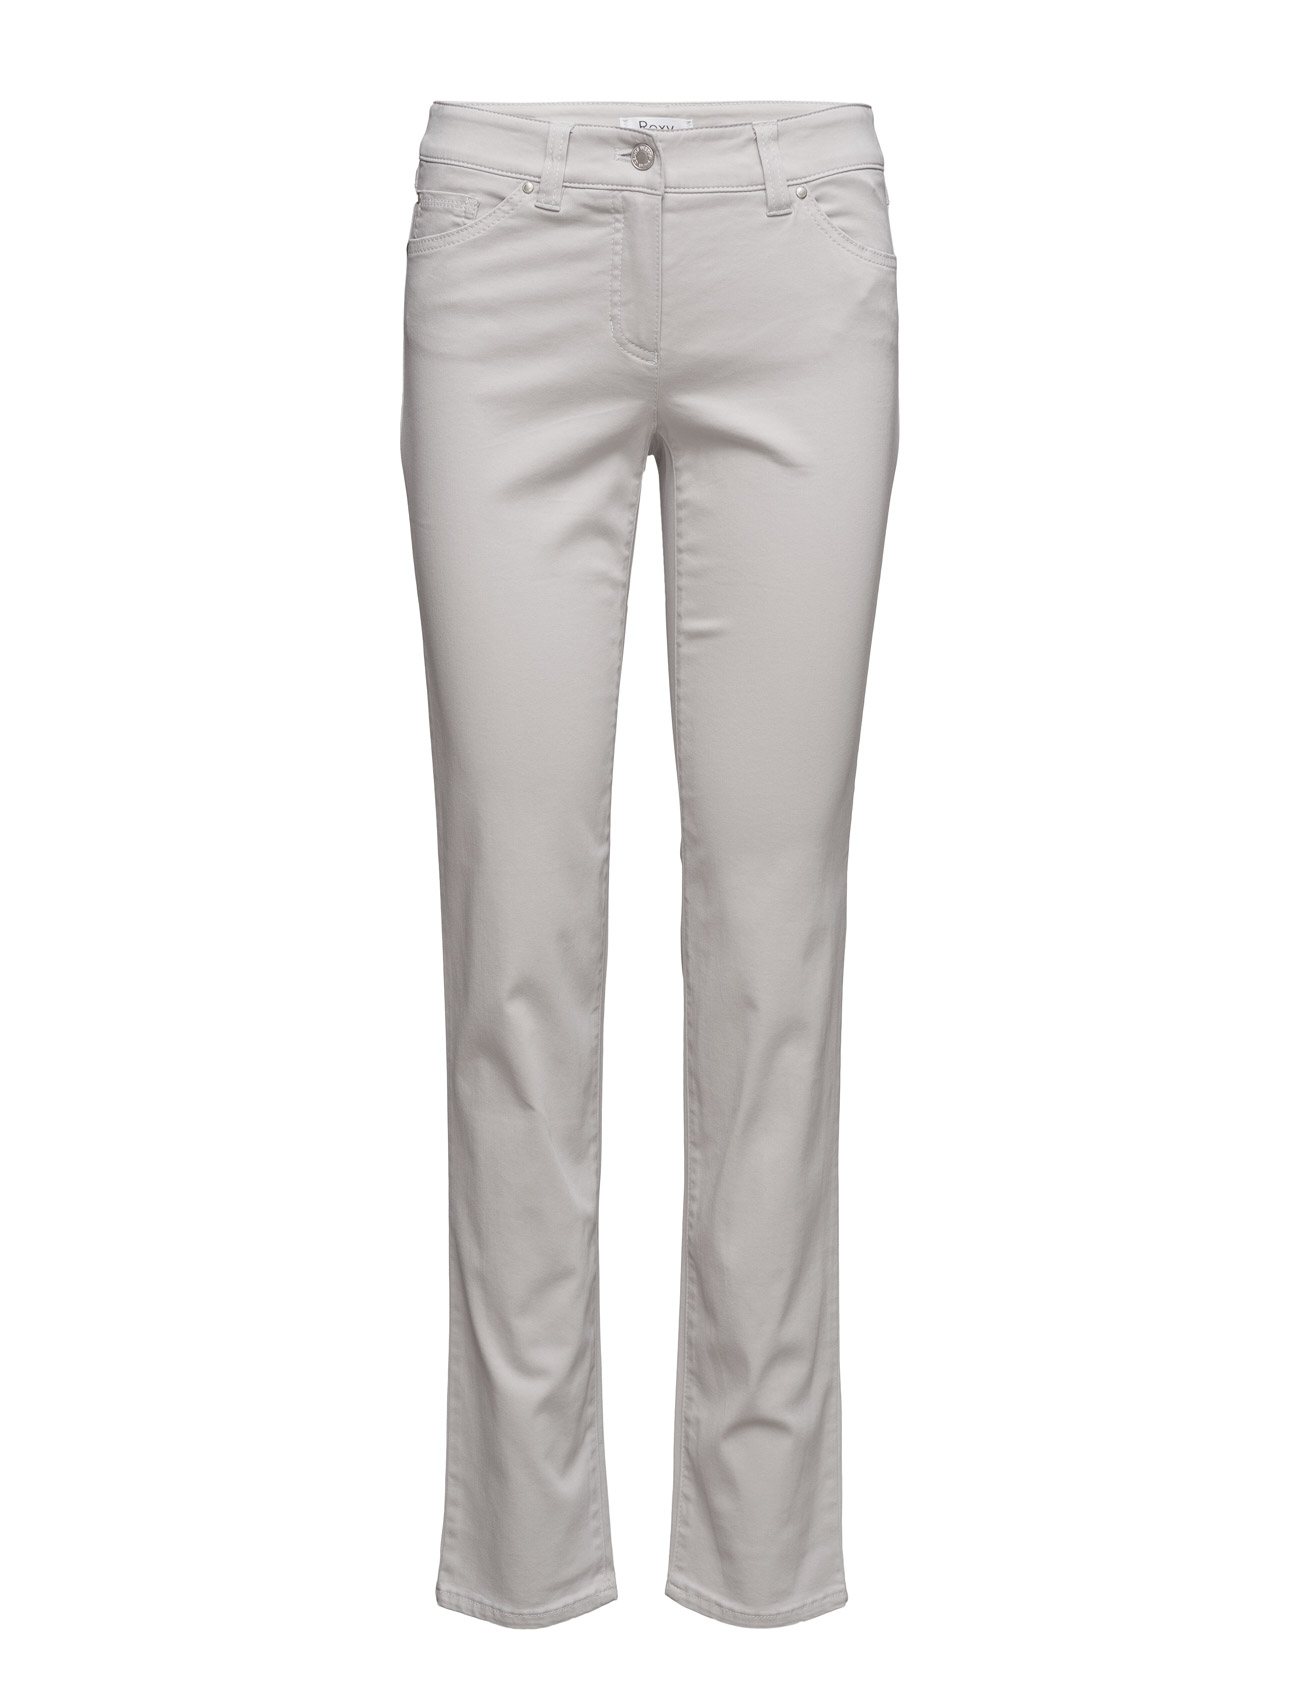 Leisure Trousers Lon Gerry Weber Edition Bukser til Damer i